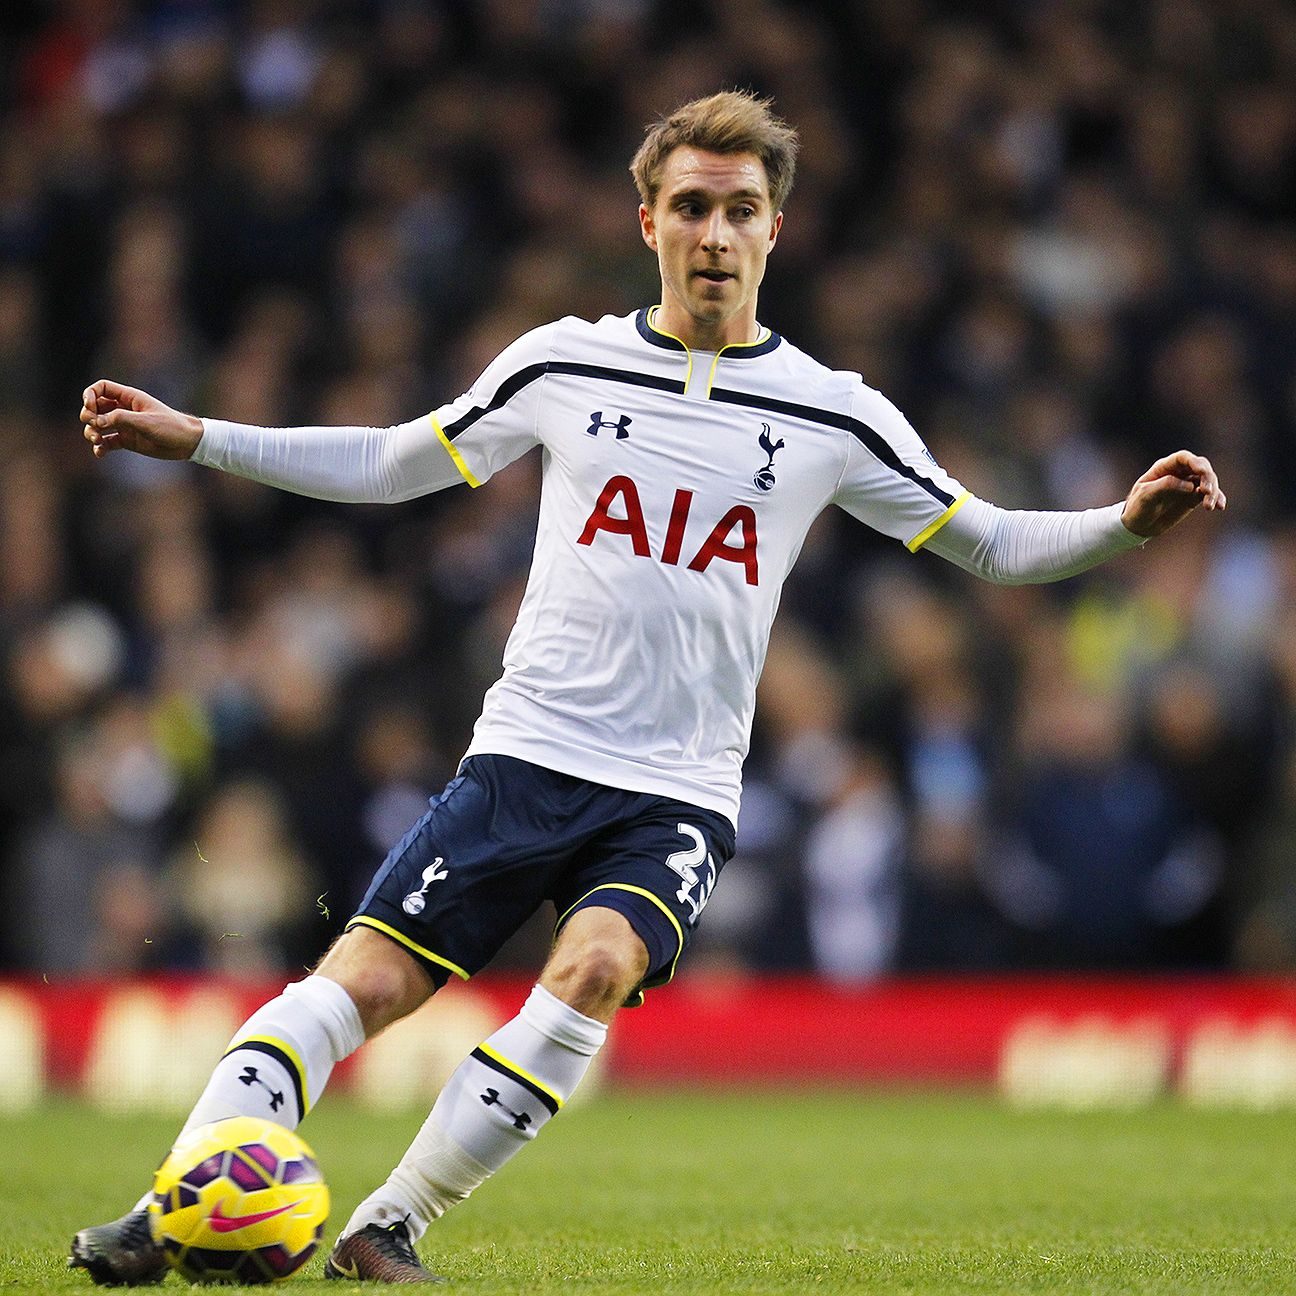 The fitness and belief of Christian Eriksen has paid major dividends for Spurs thus far this season.